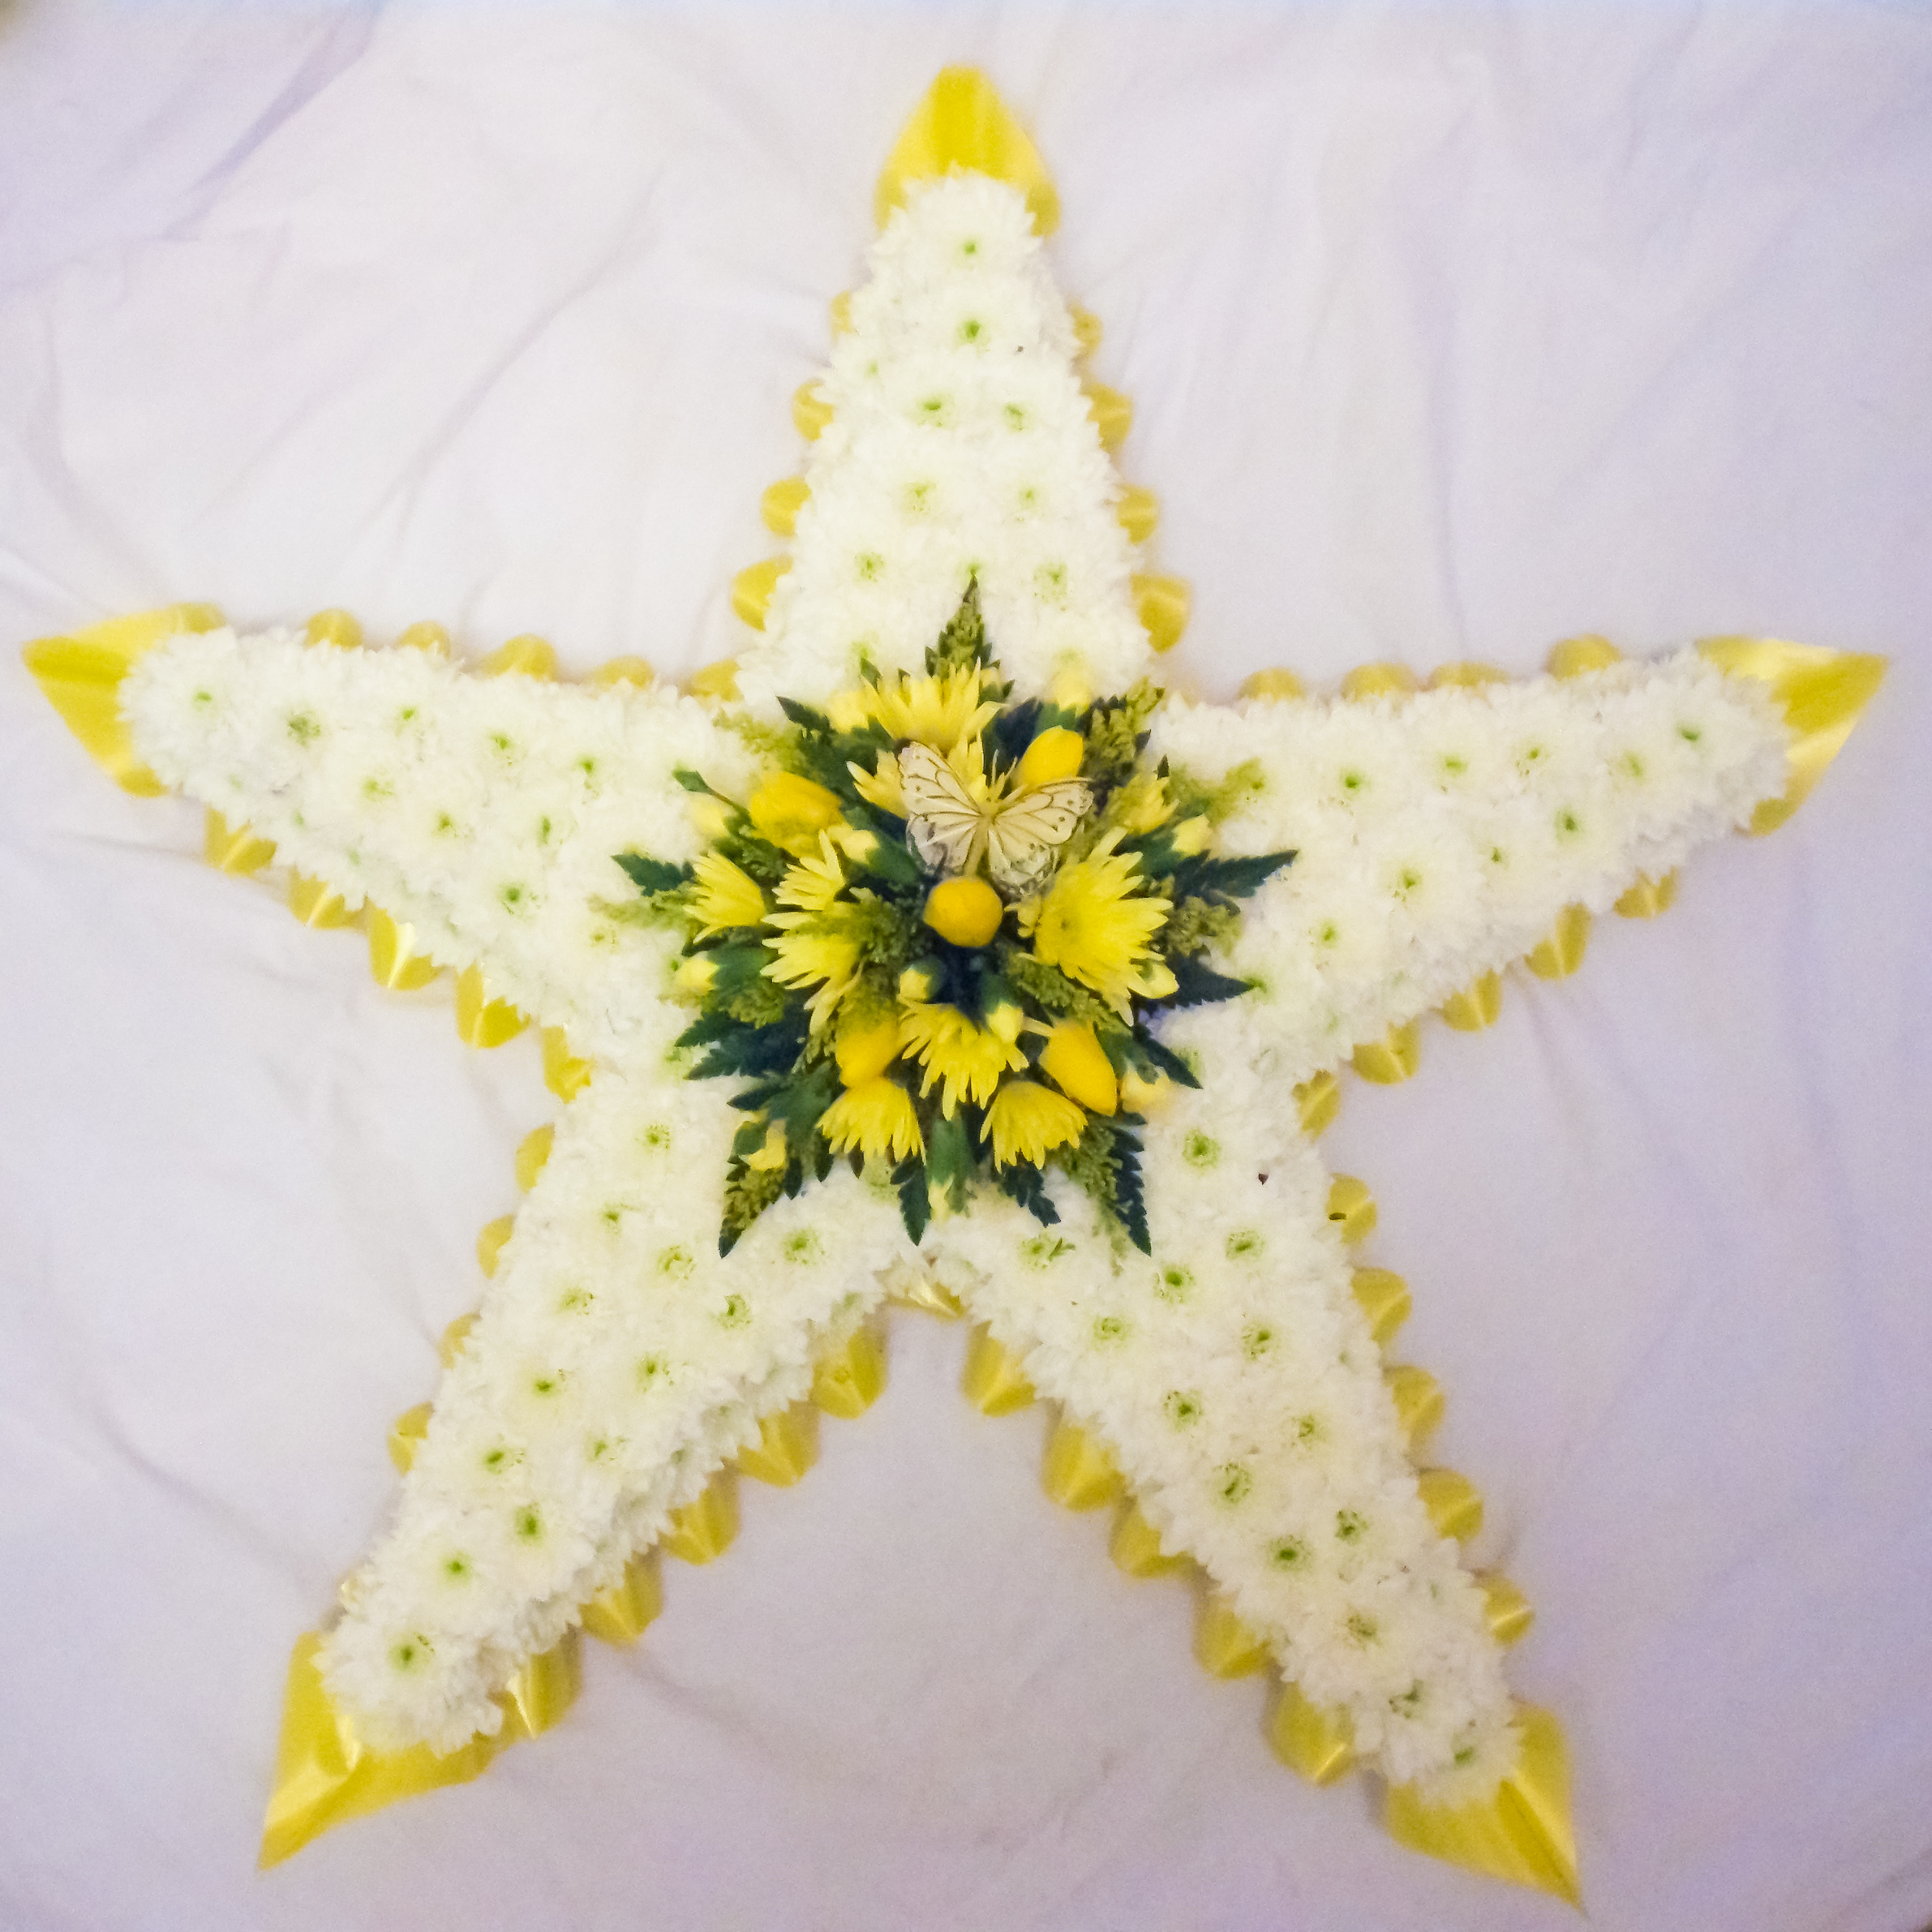 Funeral Star 5 Point Palmers Florist 0161 723 2486